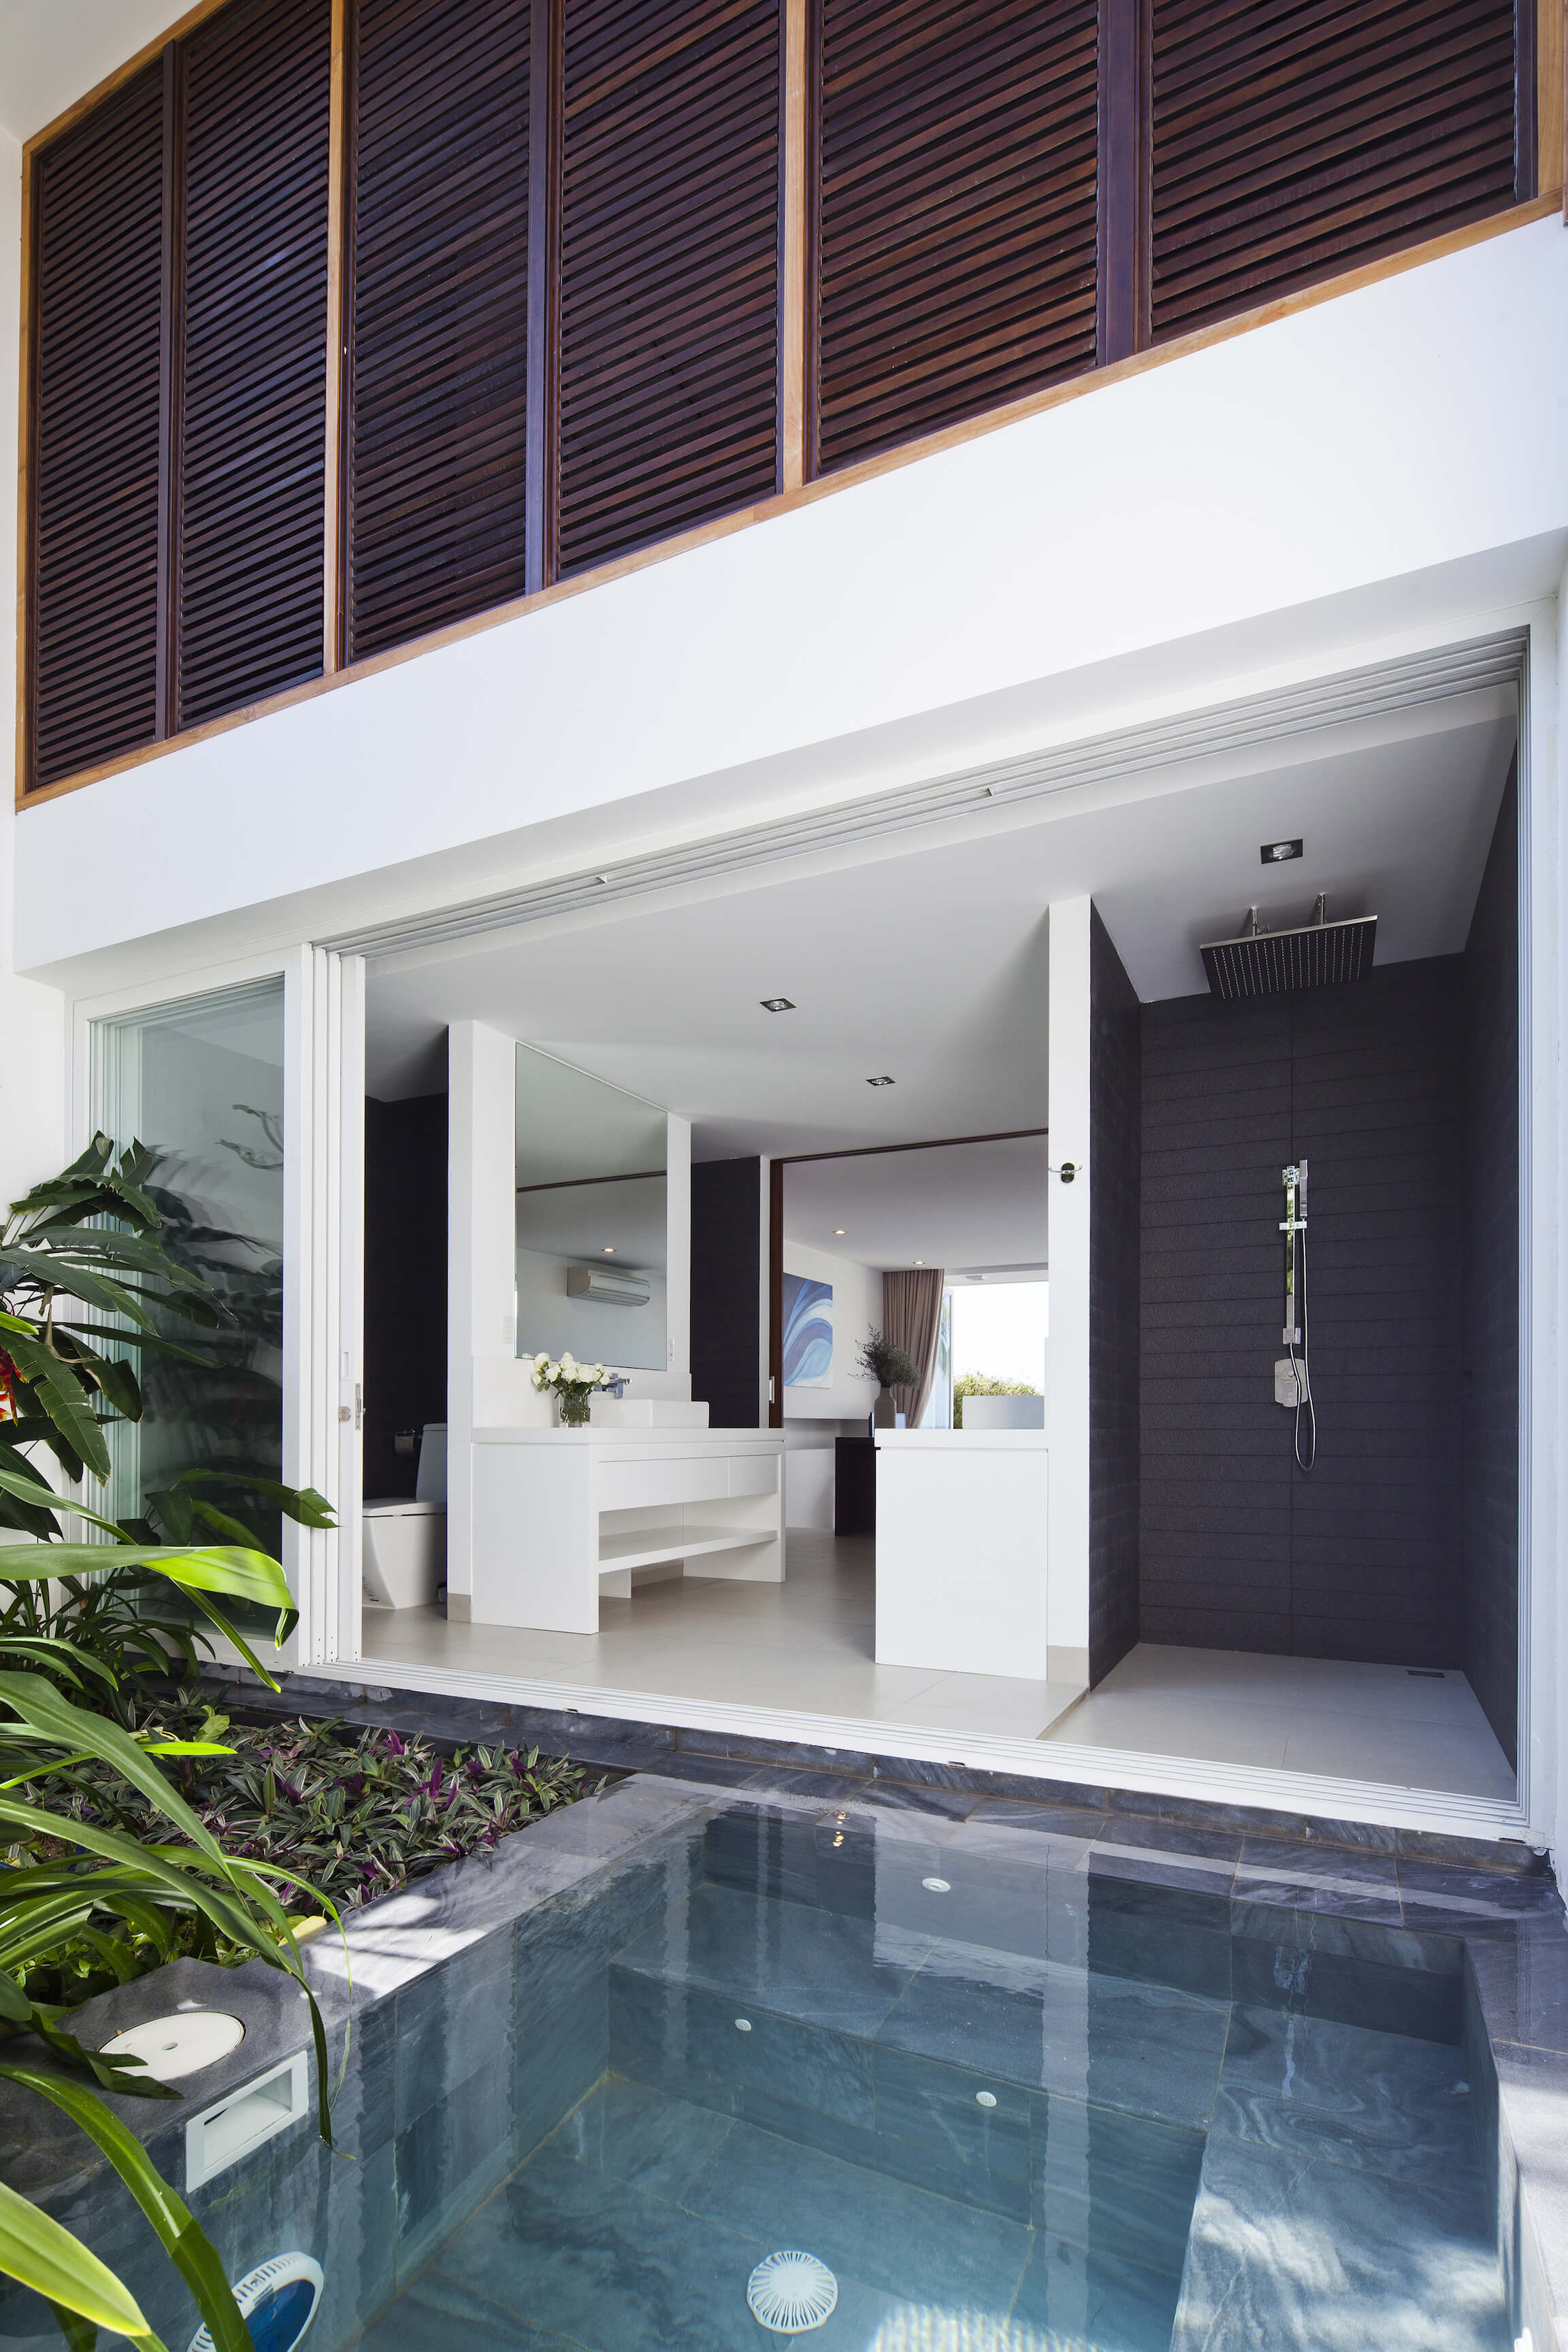 Next to the pool we see one of the bathrooms fully opened. White vanities match bedroom decor, while dark paneled shower stands at right. Timber louvers hang above.